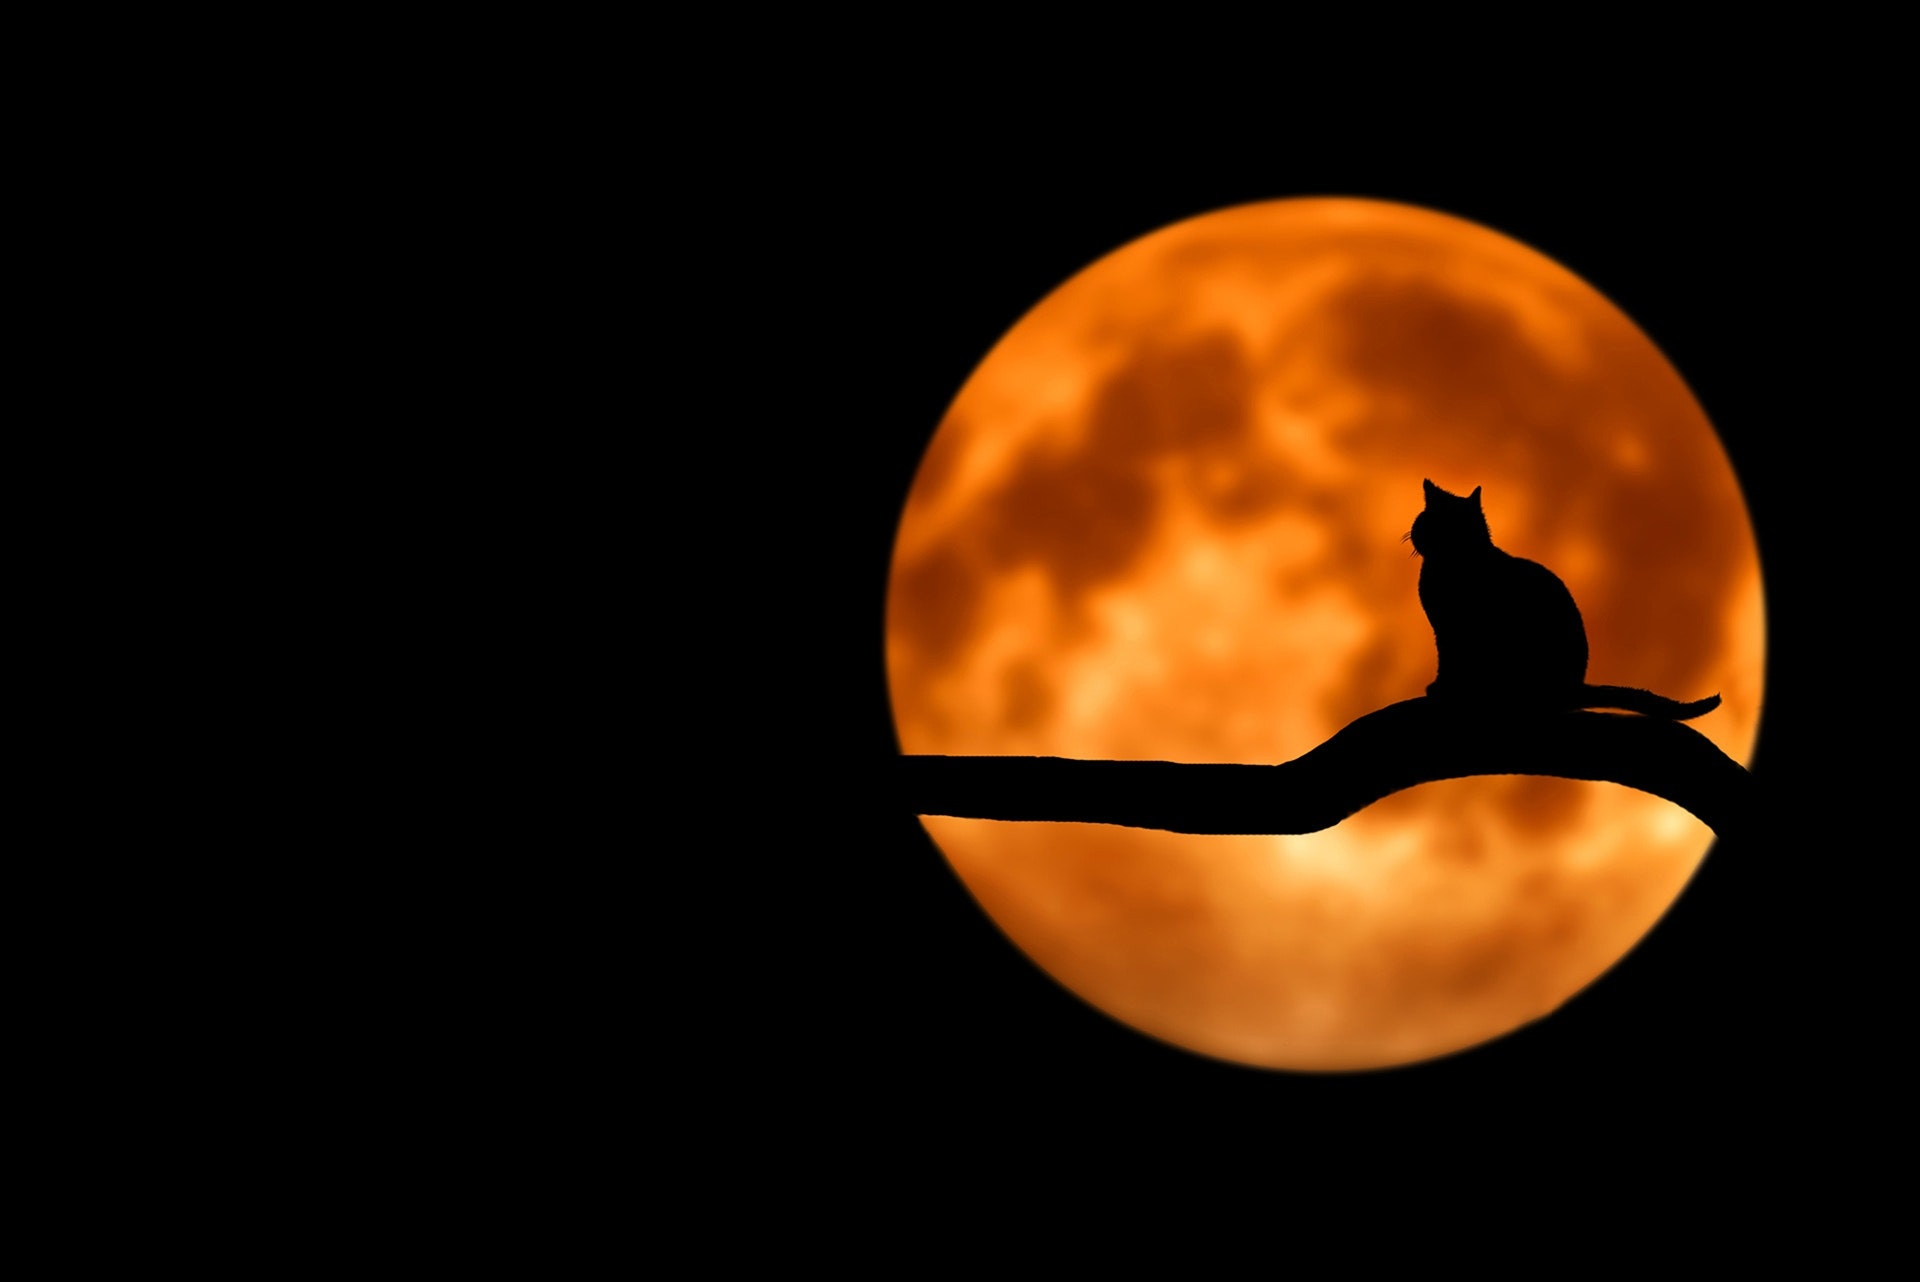 An image with the silhouette of a cat sitting on a branch in front of an orange moon.